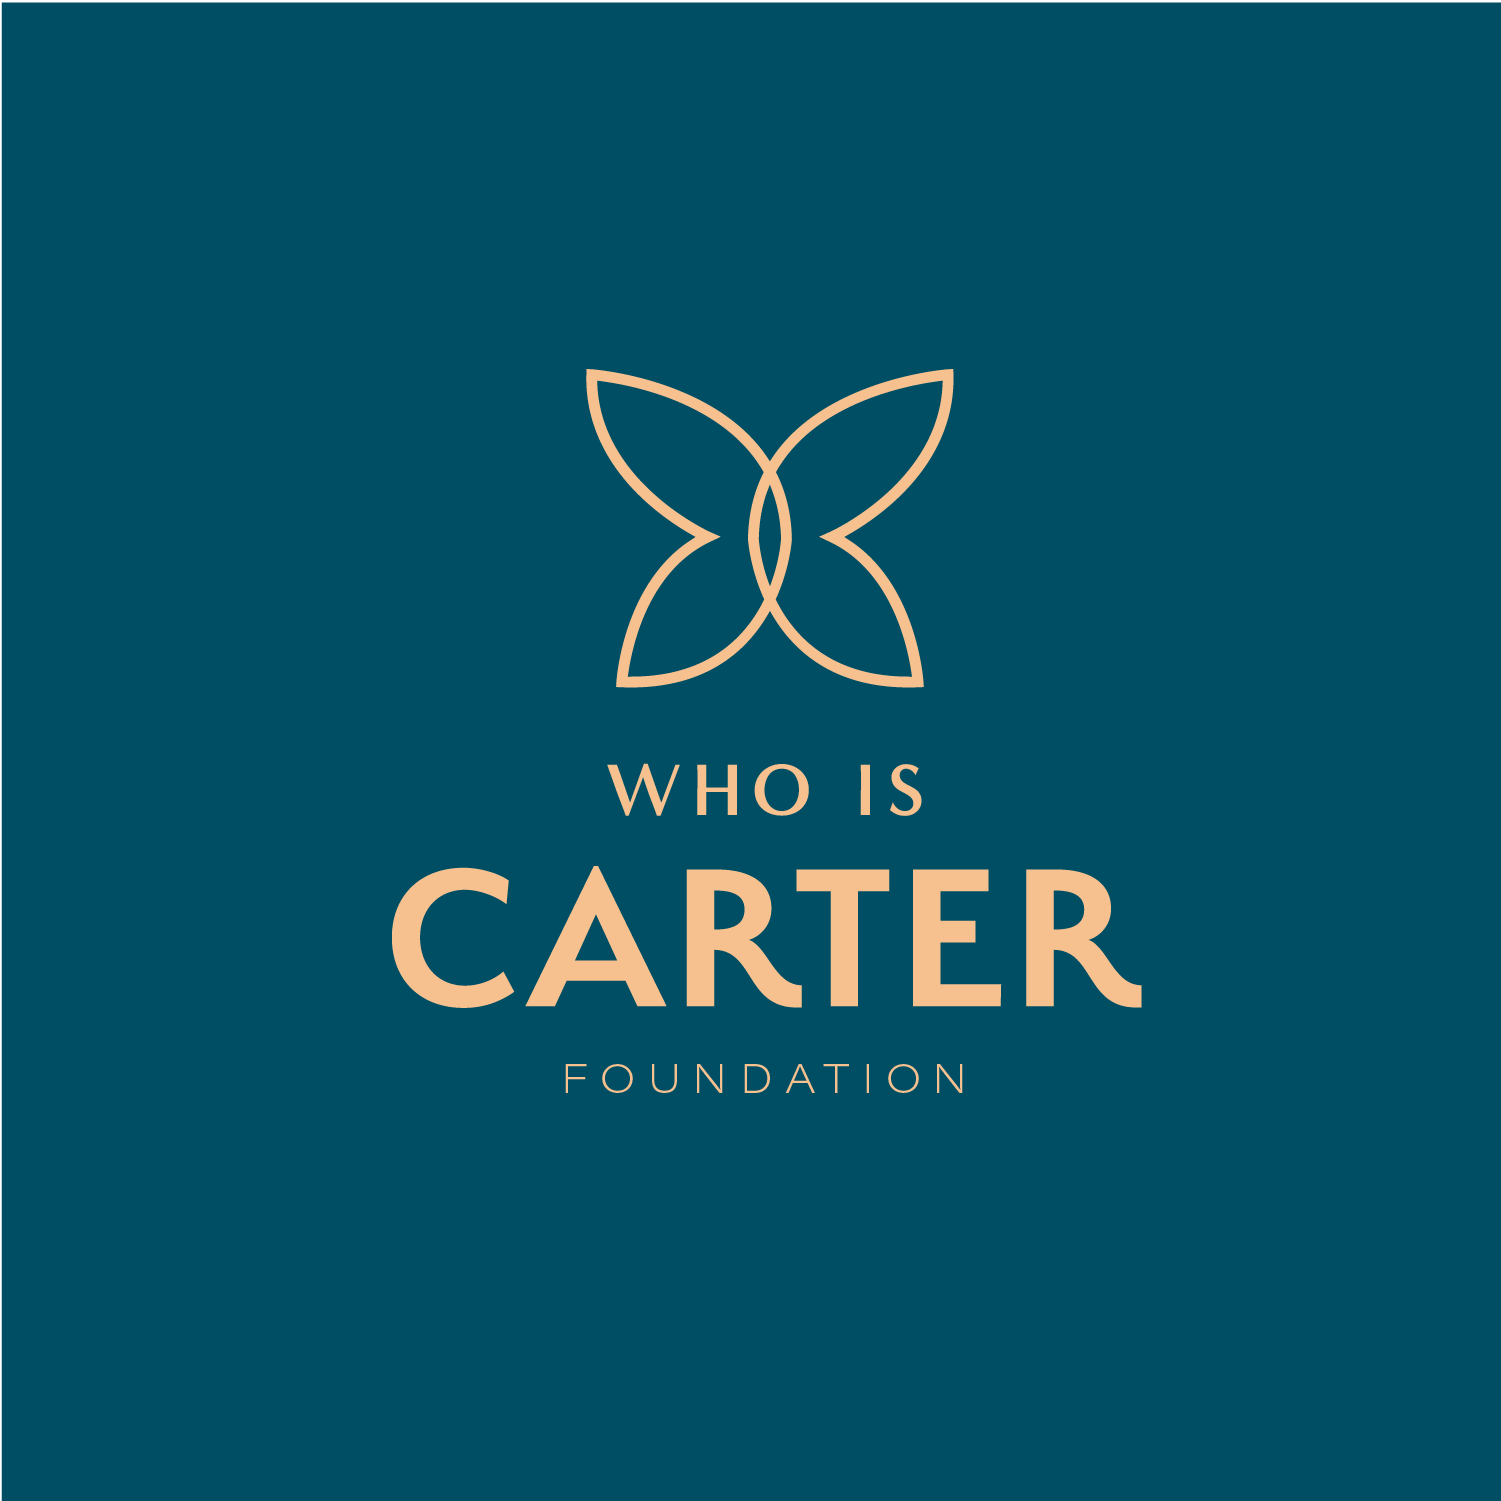 WhoIsCarter foundation hello big idea.png